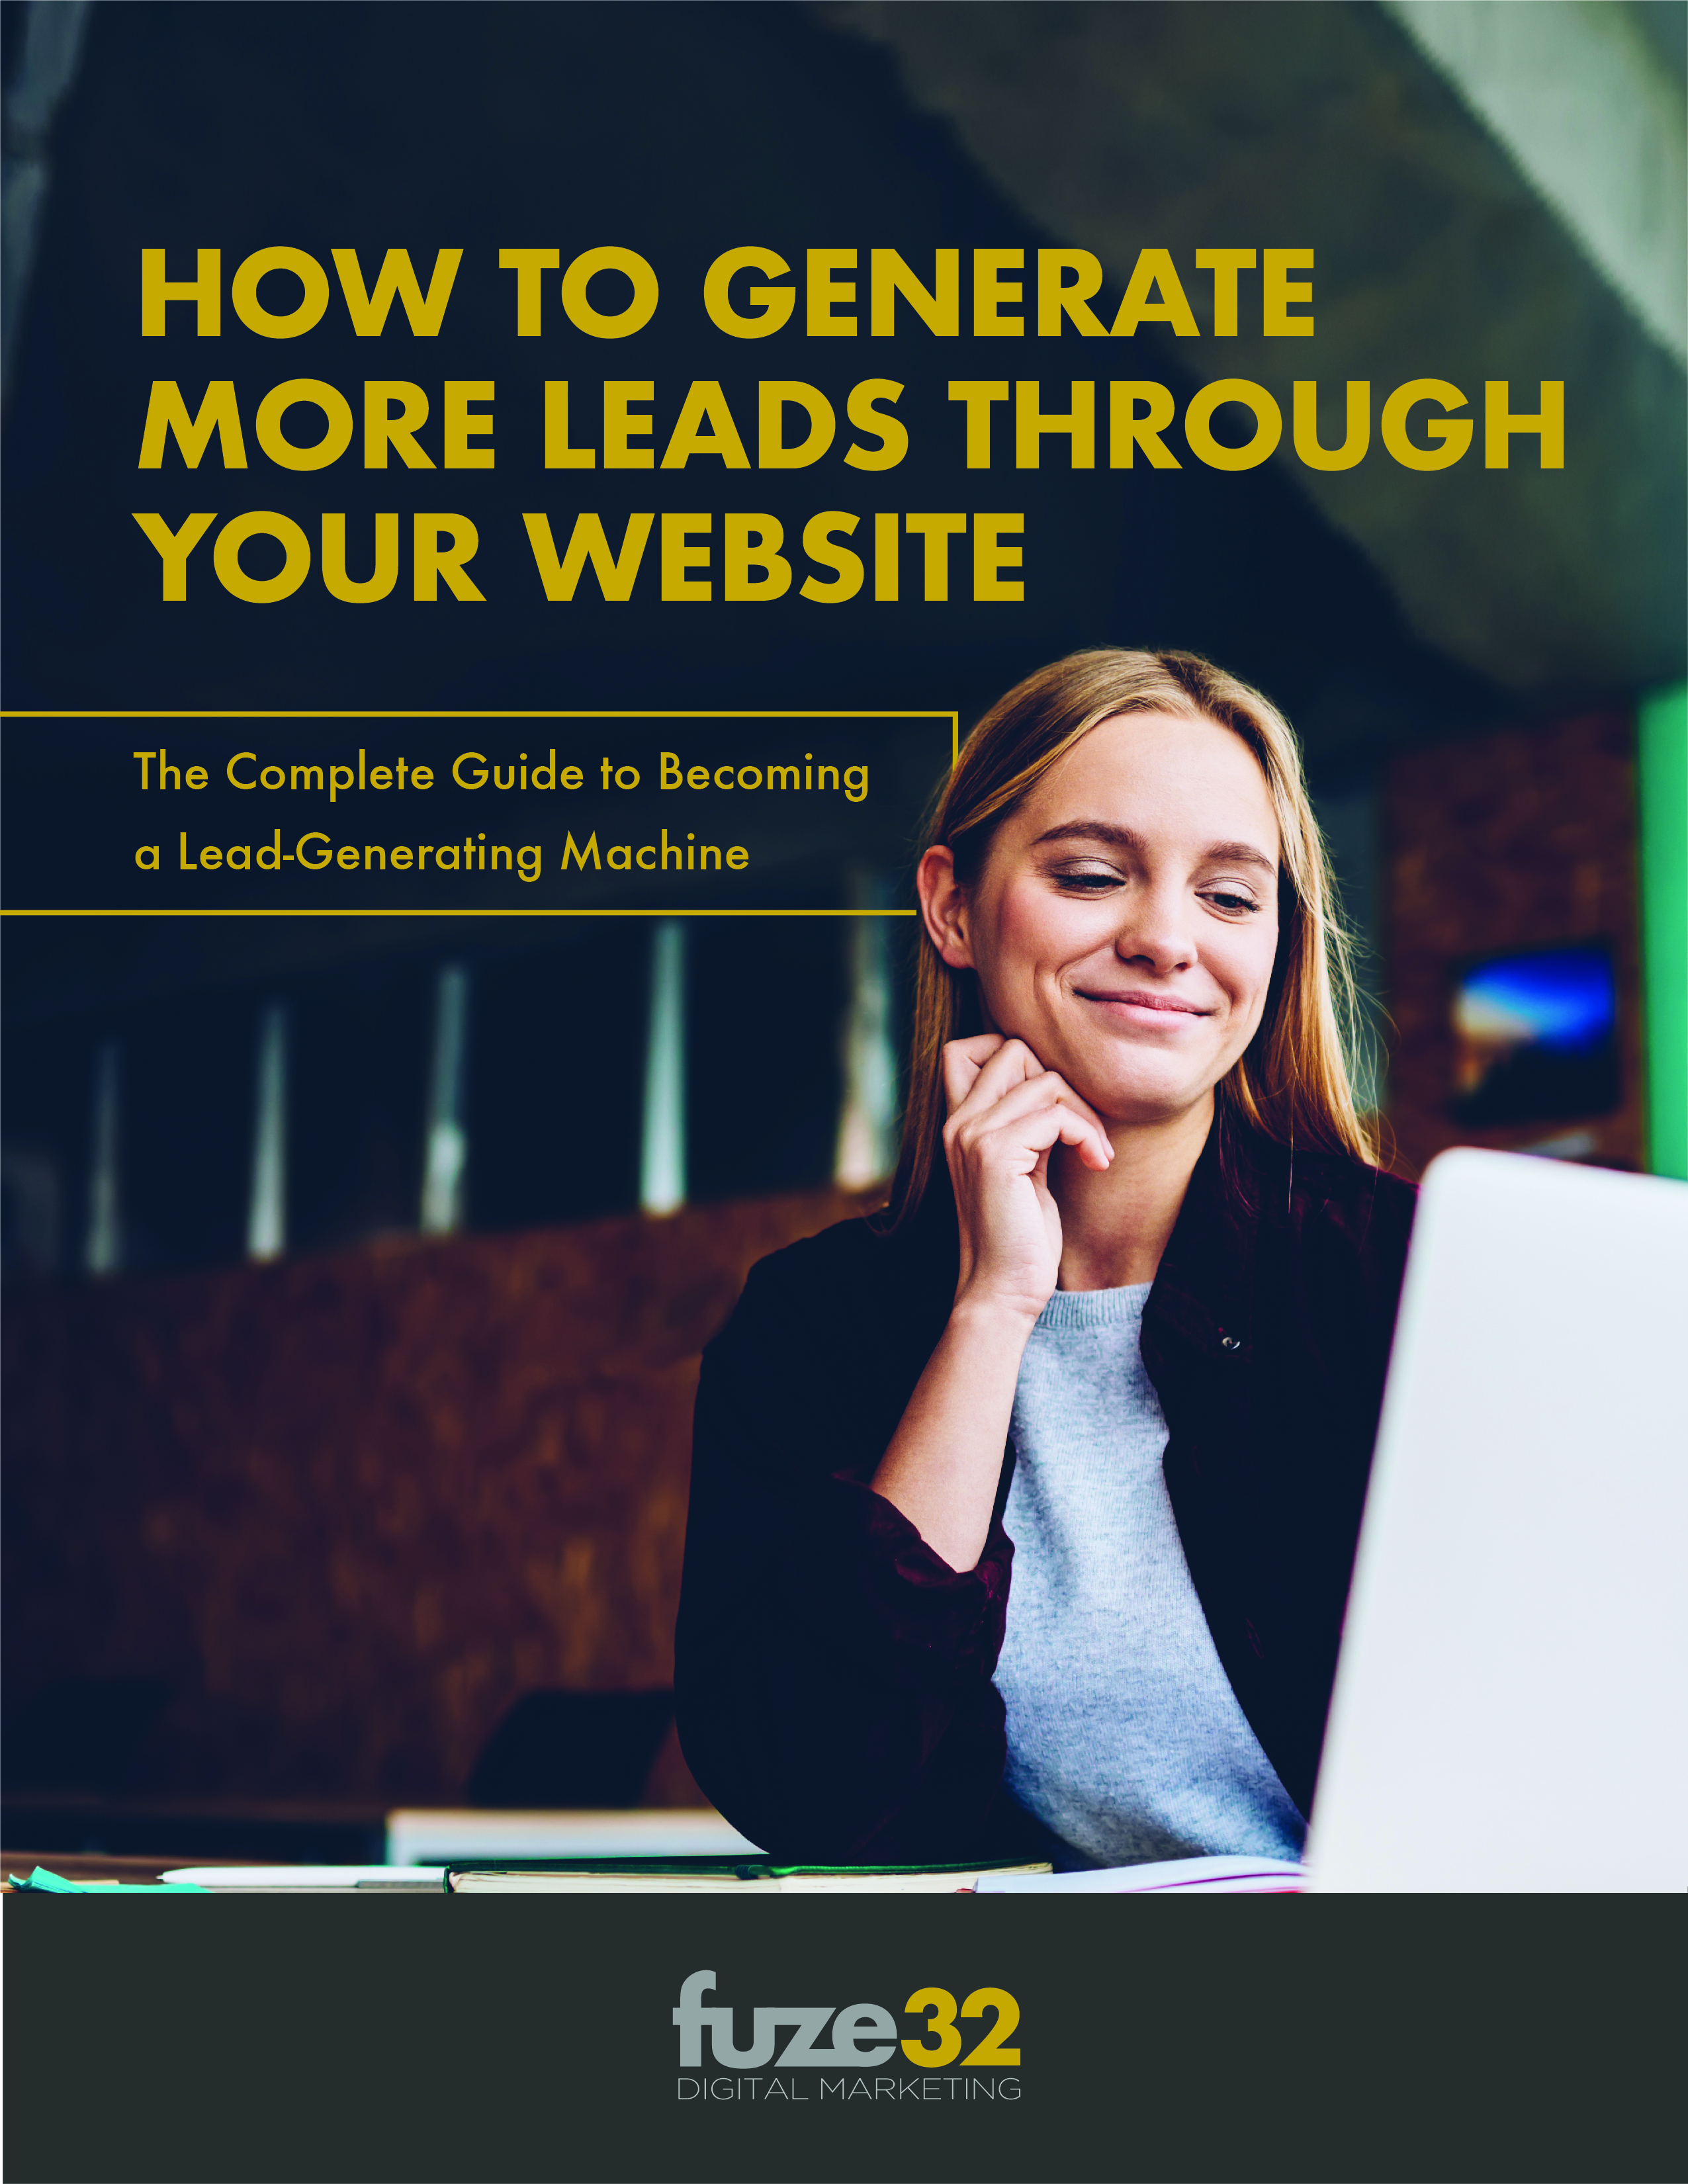 fuze32-eBook-How-To-Generate-Leads-Through-Website-Featured-Image (4)